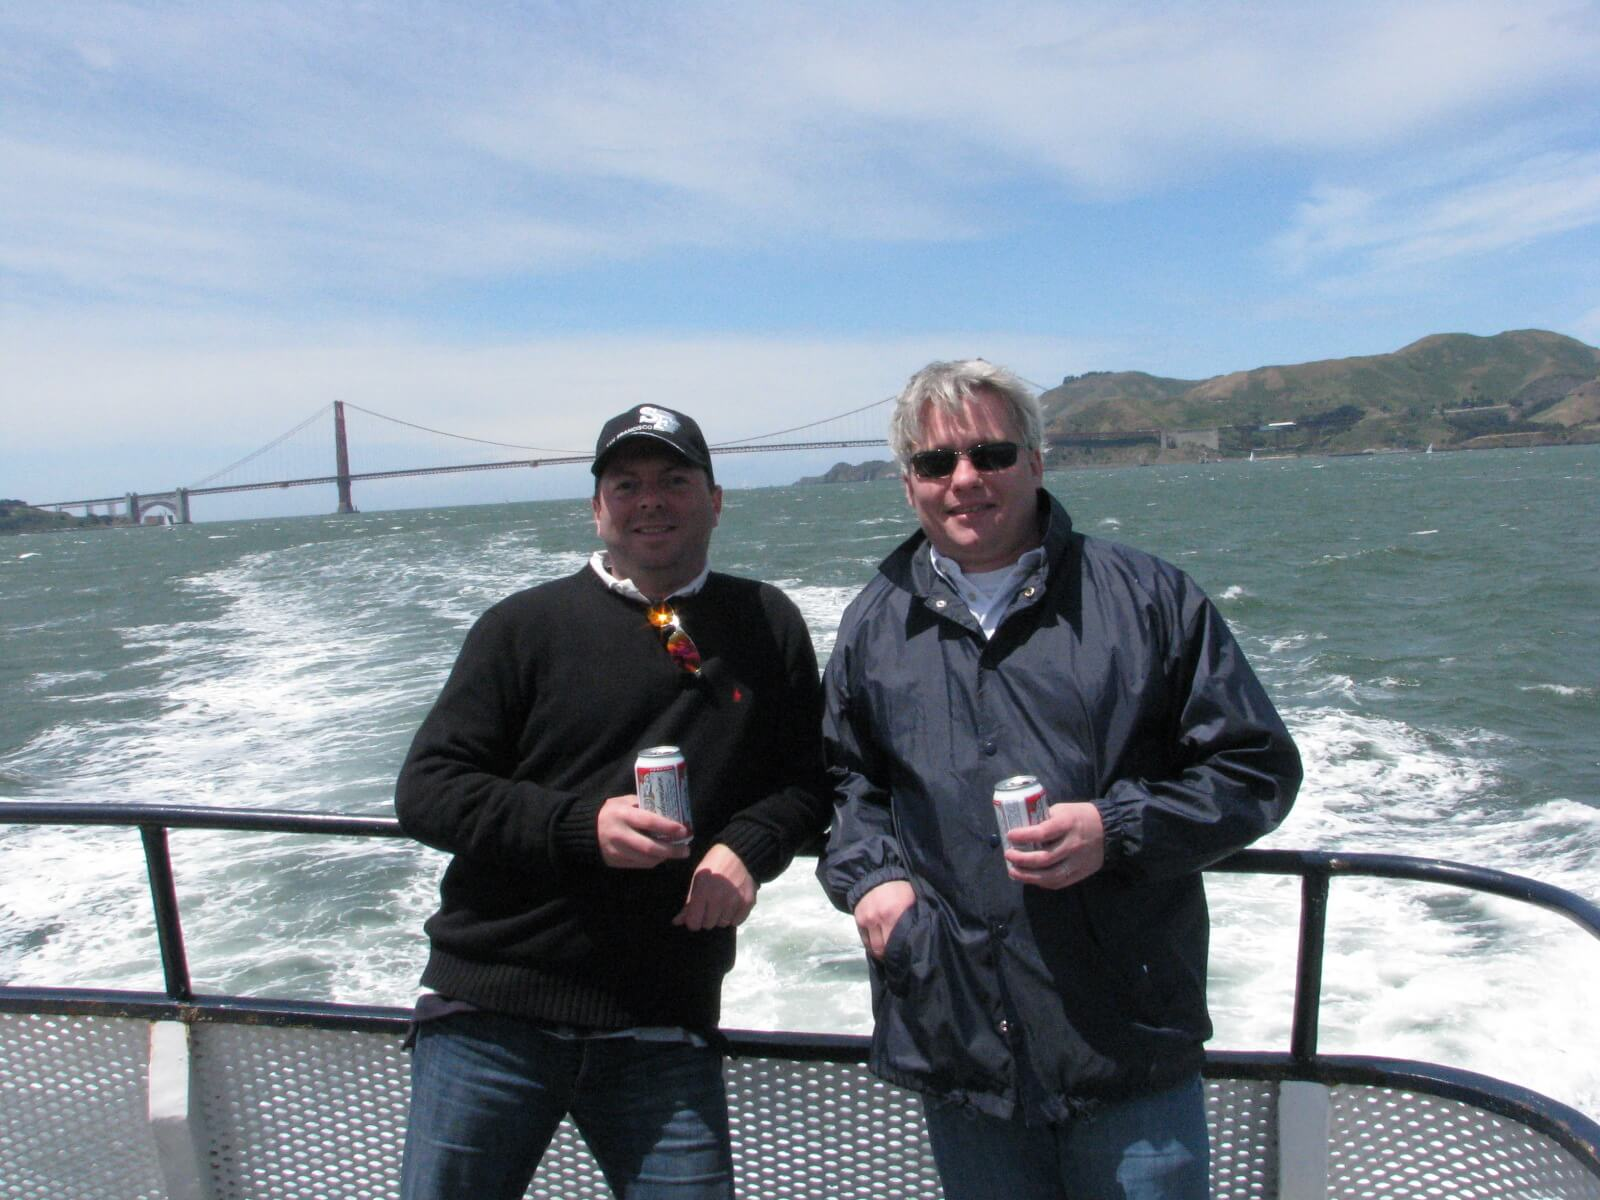 san_francisco_bay_tours_boat_cruises_around_the_bay_under_the_golden_gate_bridge